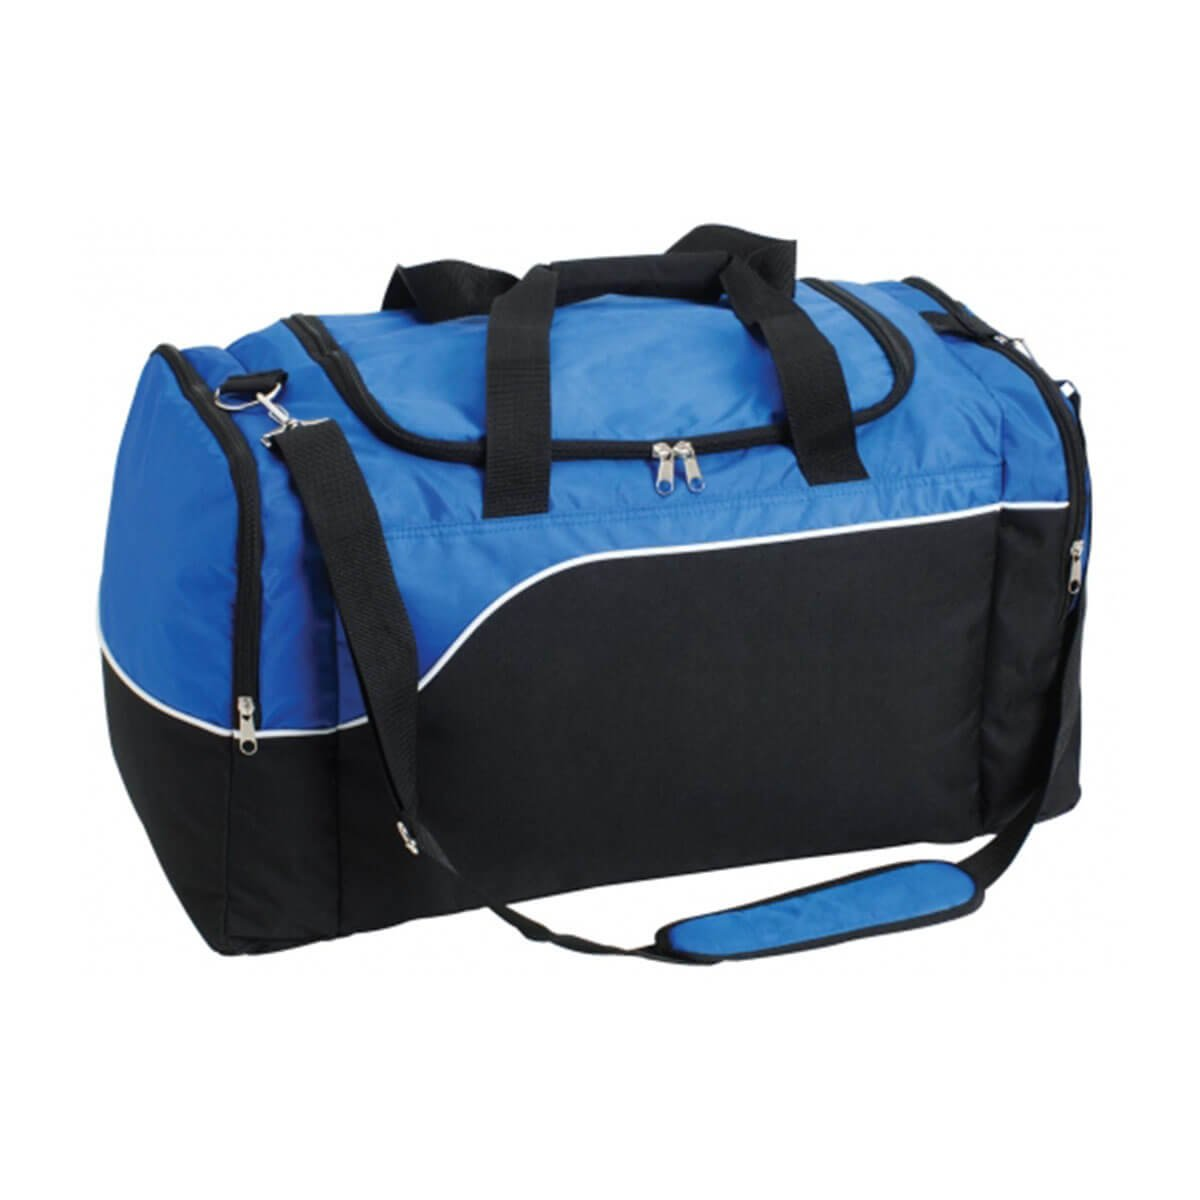 Align Sports Bag-Royal / White / Black